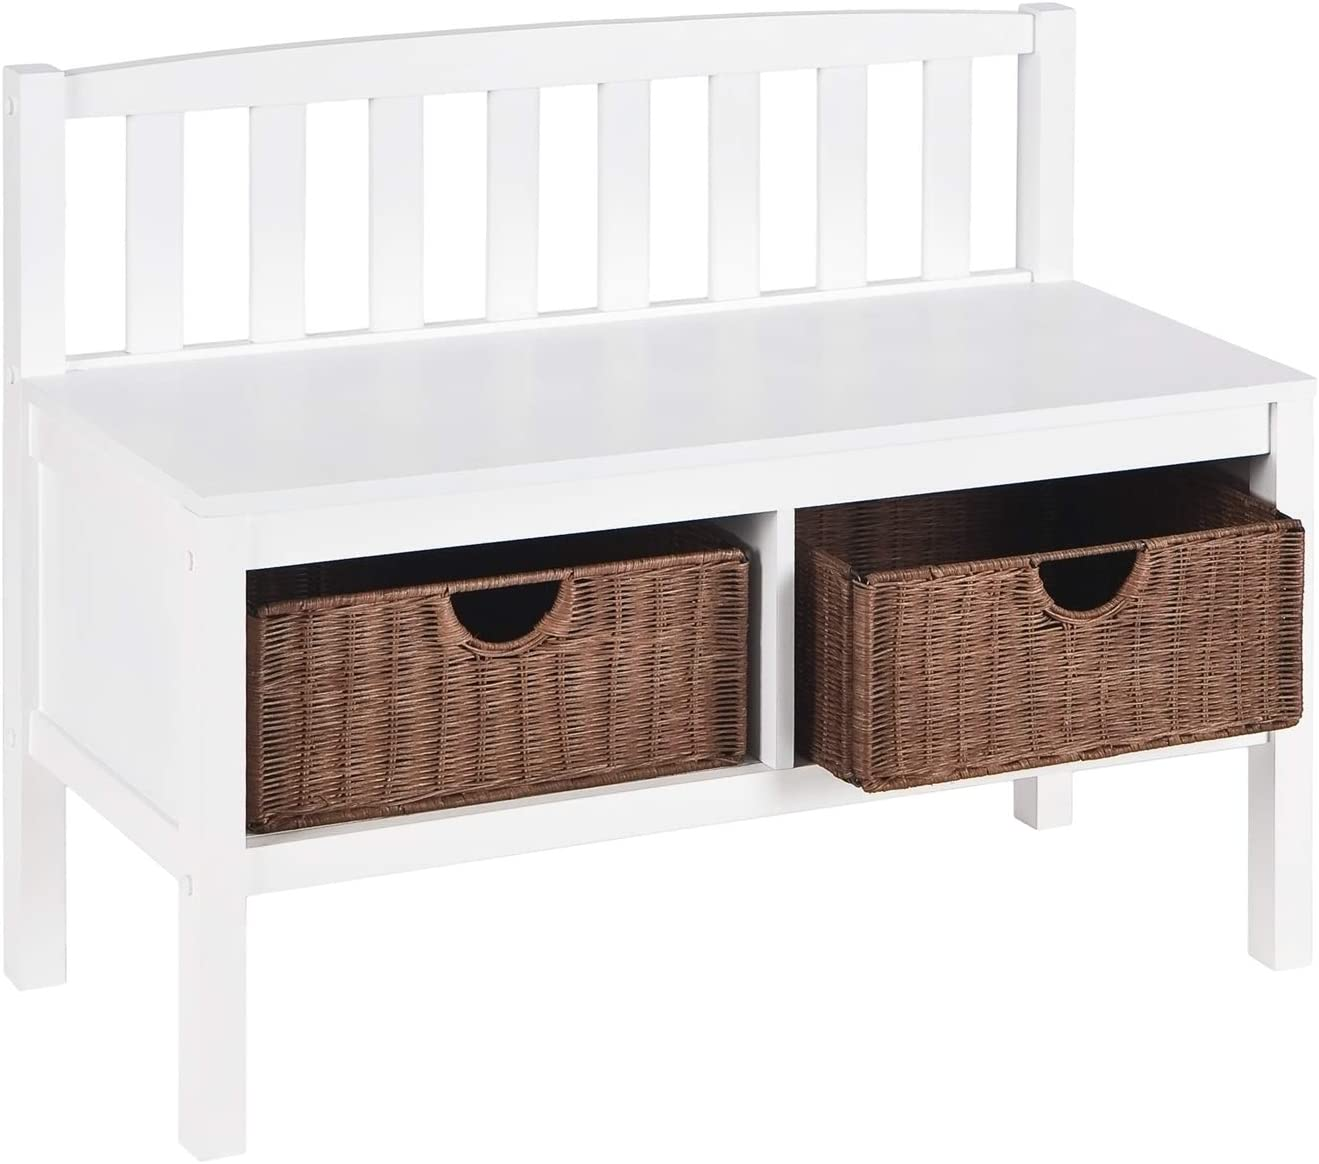 "Home Decorators Collection Lakewood Bench with Storage Baskets, 28.5"" Hx36 W, White"